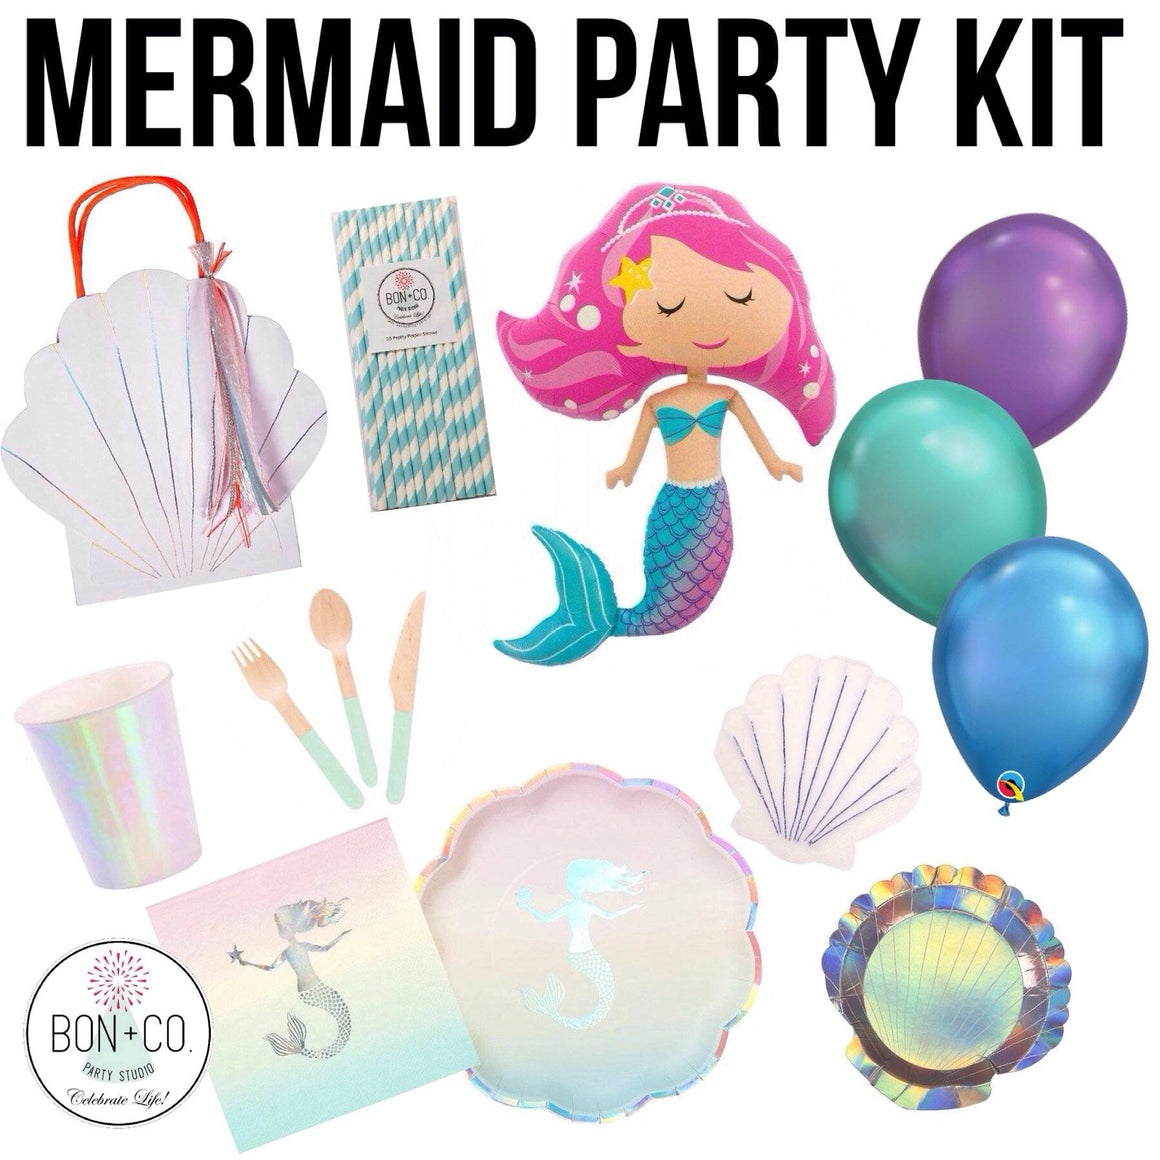 PARTY KIT - MERMAID, Party Kit, Bon + Co. Party Studio - Bon + Co. Party Studio